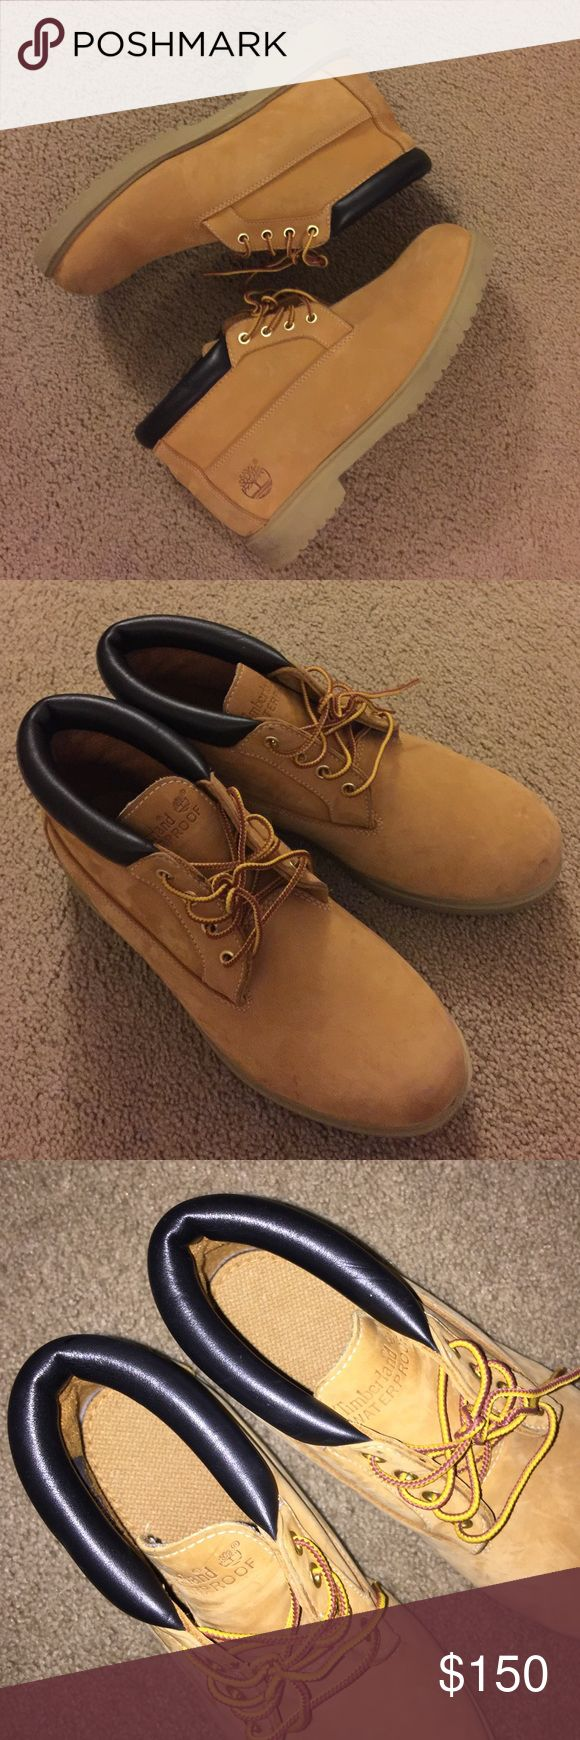 "TAN TIMBERLAND CHUKKA's Men's 6"" Low profile Tan Timberland CHUKKA Boots waterproof with padded collar in like new condition.. NO TRADES NO PP Timberland Shoes Chukka Boots"